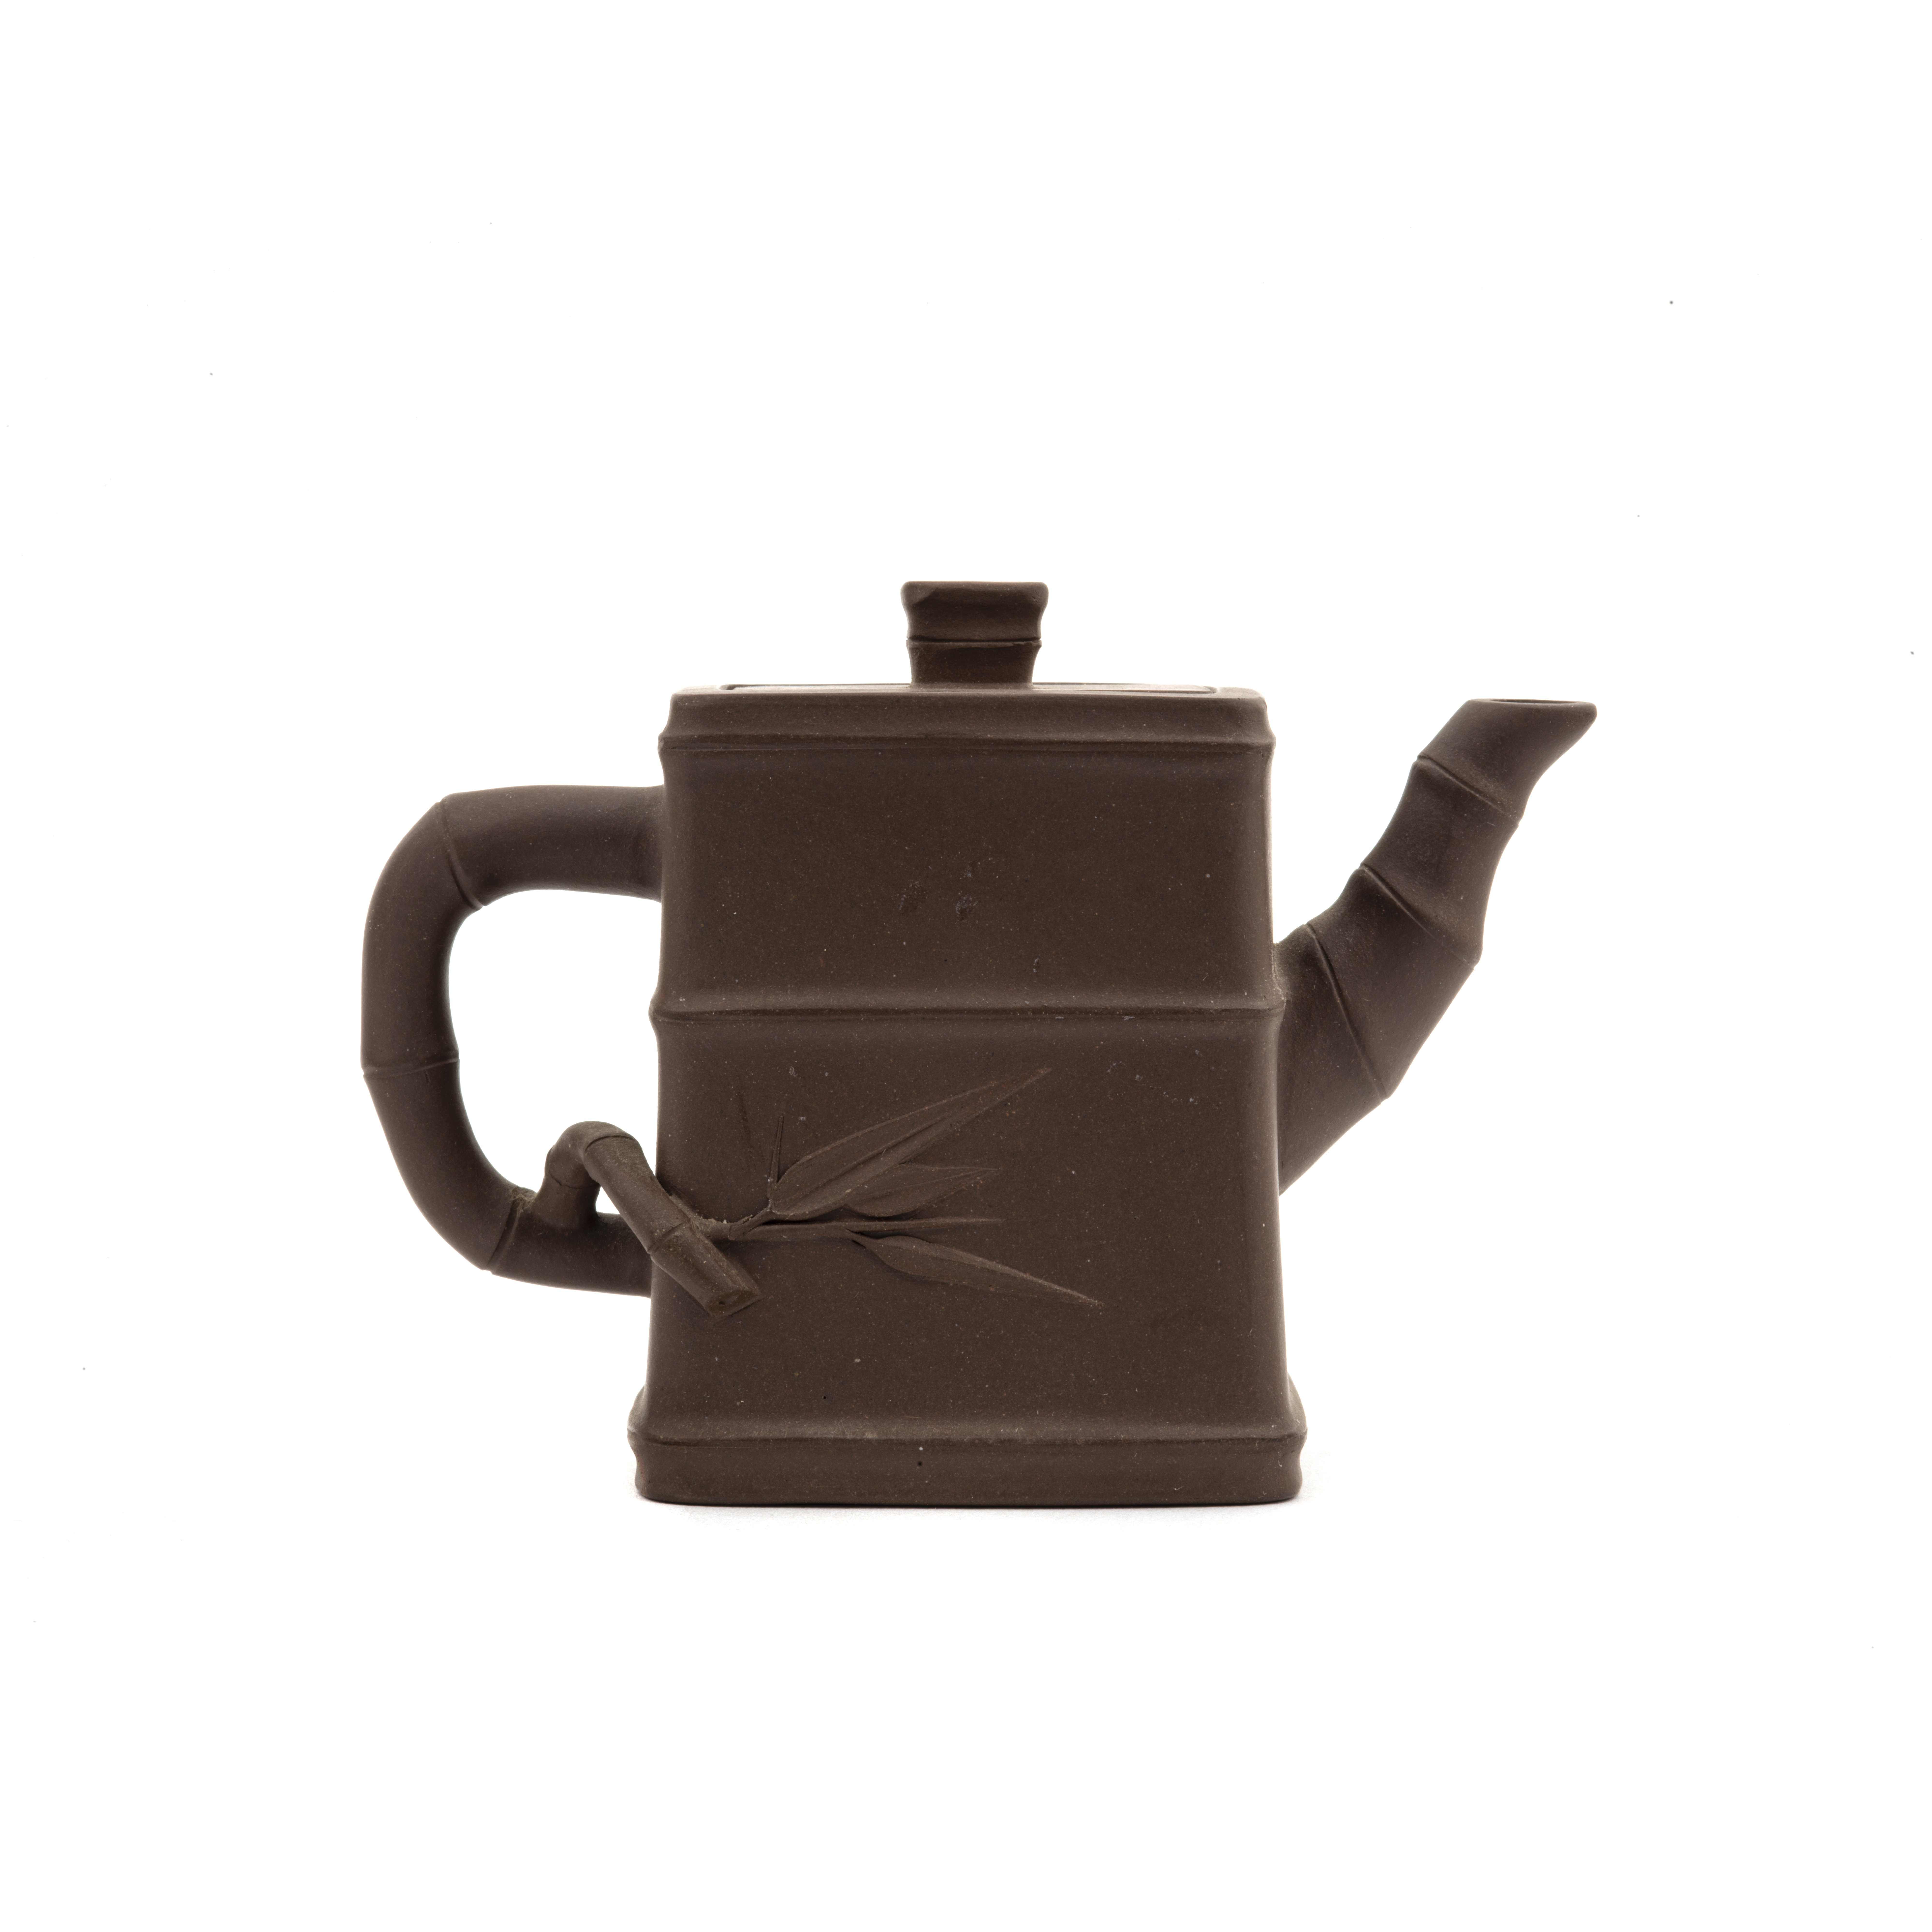 Yixing Chinese pottery bamboo form teapot, right side view